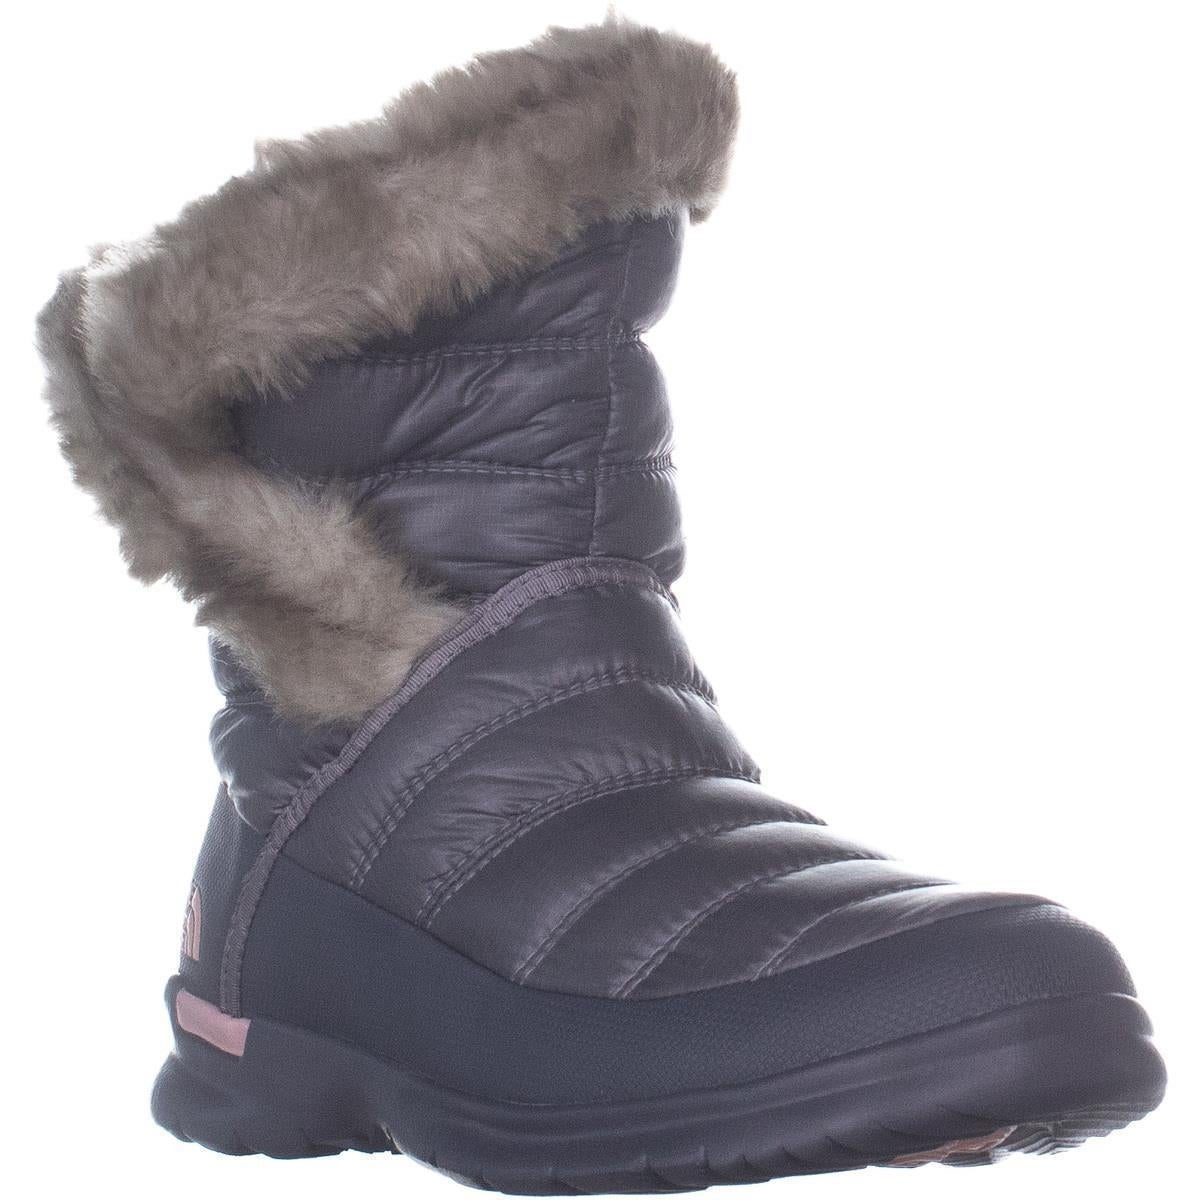 8d5cccc2d Buy Snow Women's Boots Online at Overstock | Our Best Women's Shoes ...